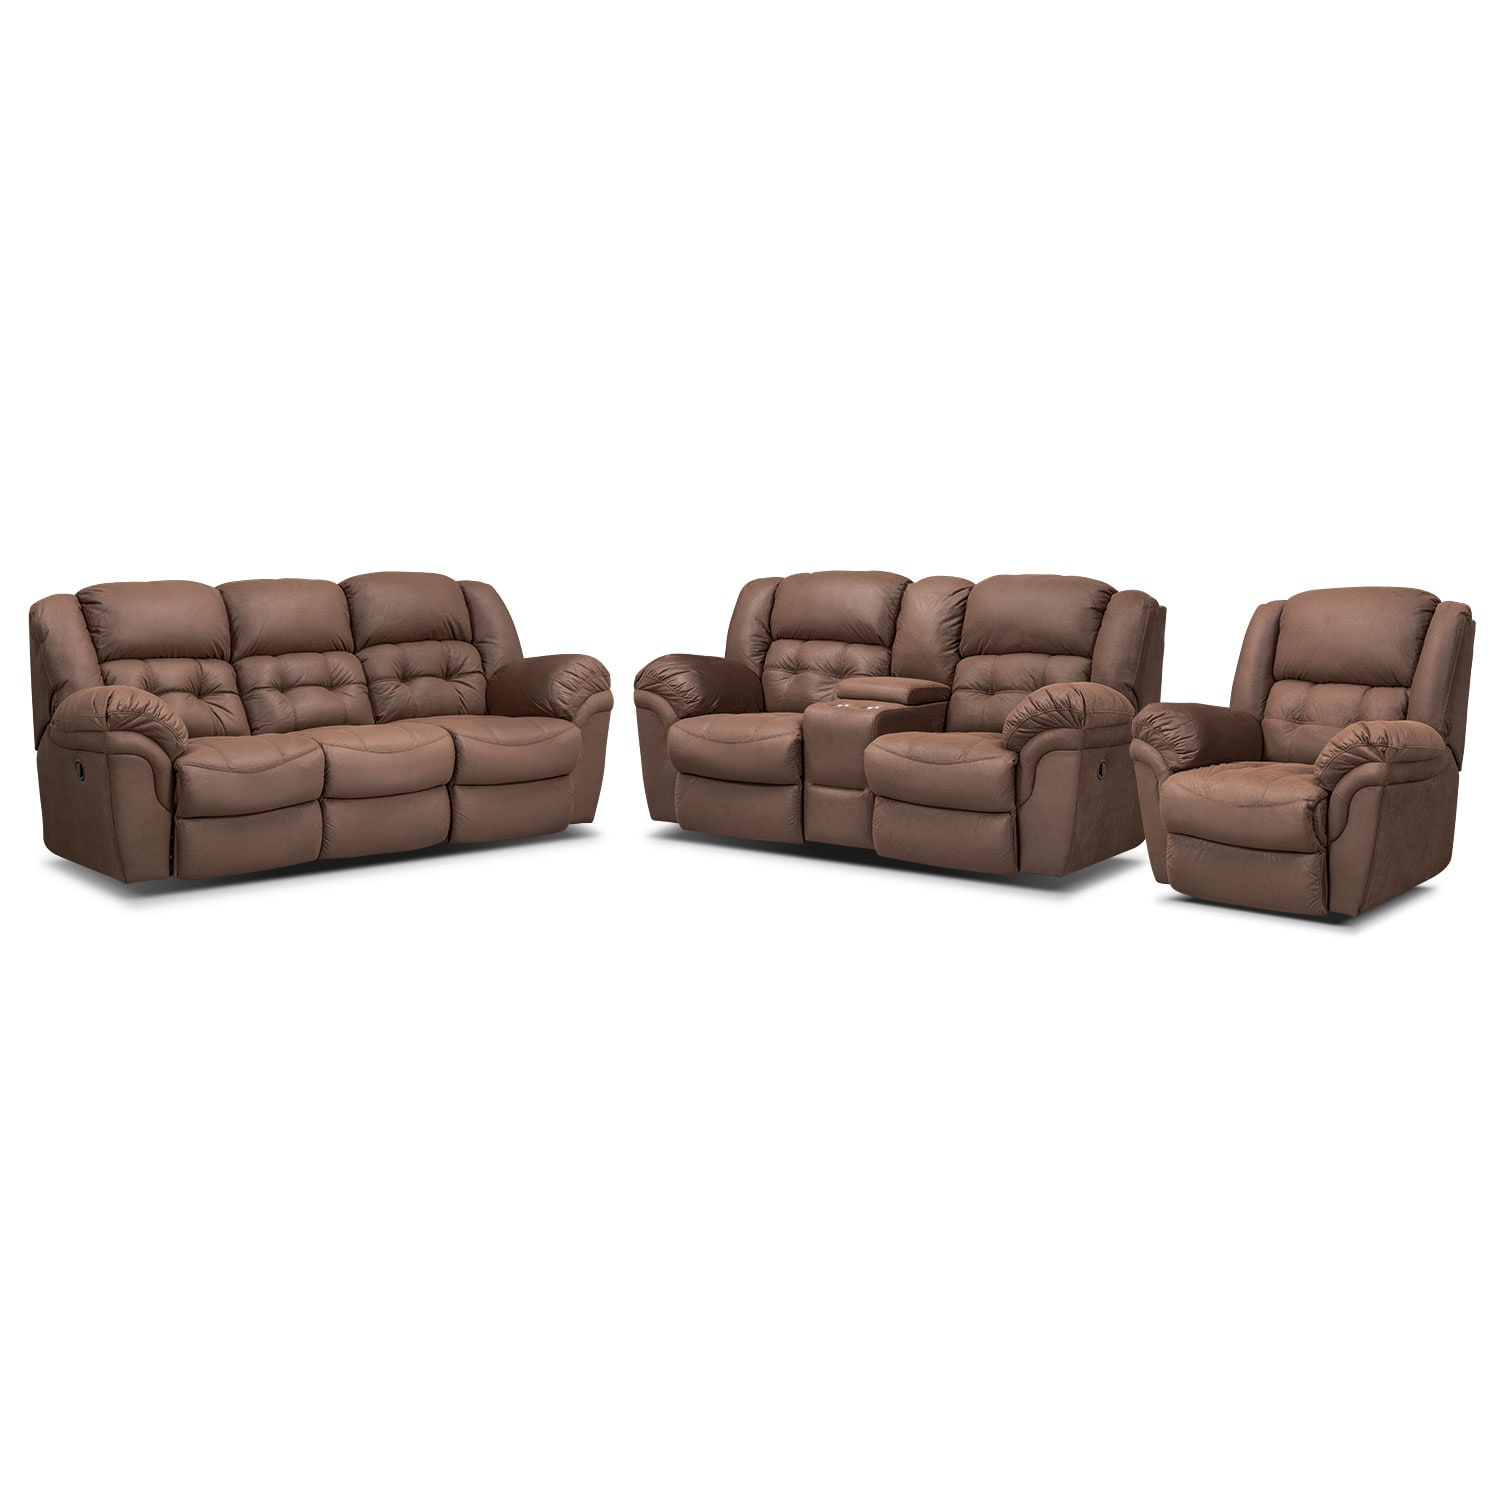 Living Room Furniture - Lancer Chocolate Manual Reclining Sofa, Reclining Loveseat w/ Console and Glider Recliner Set